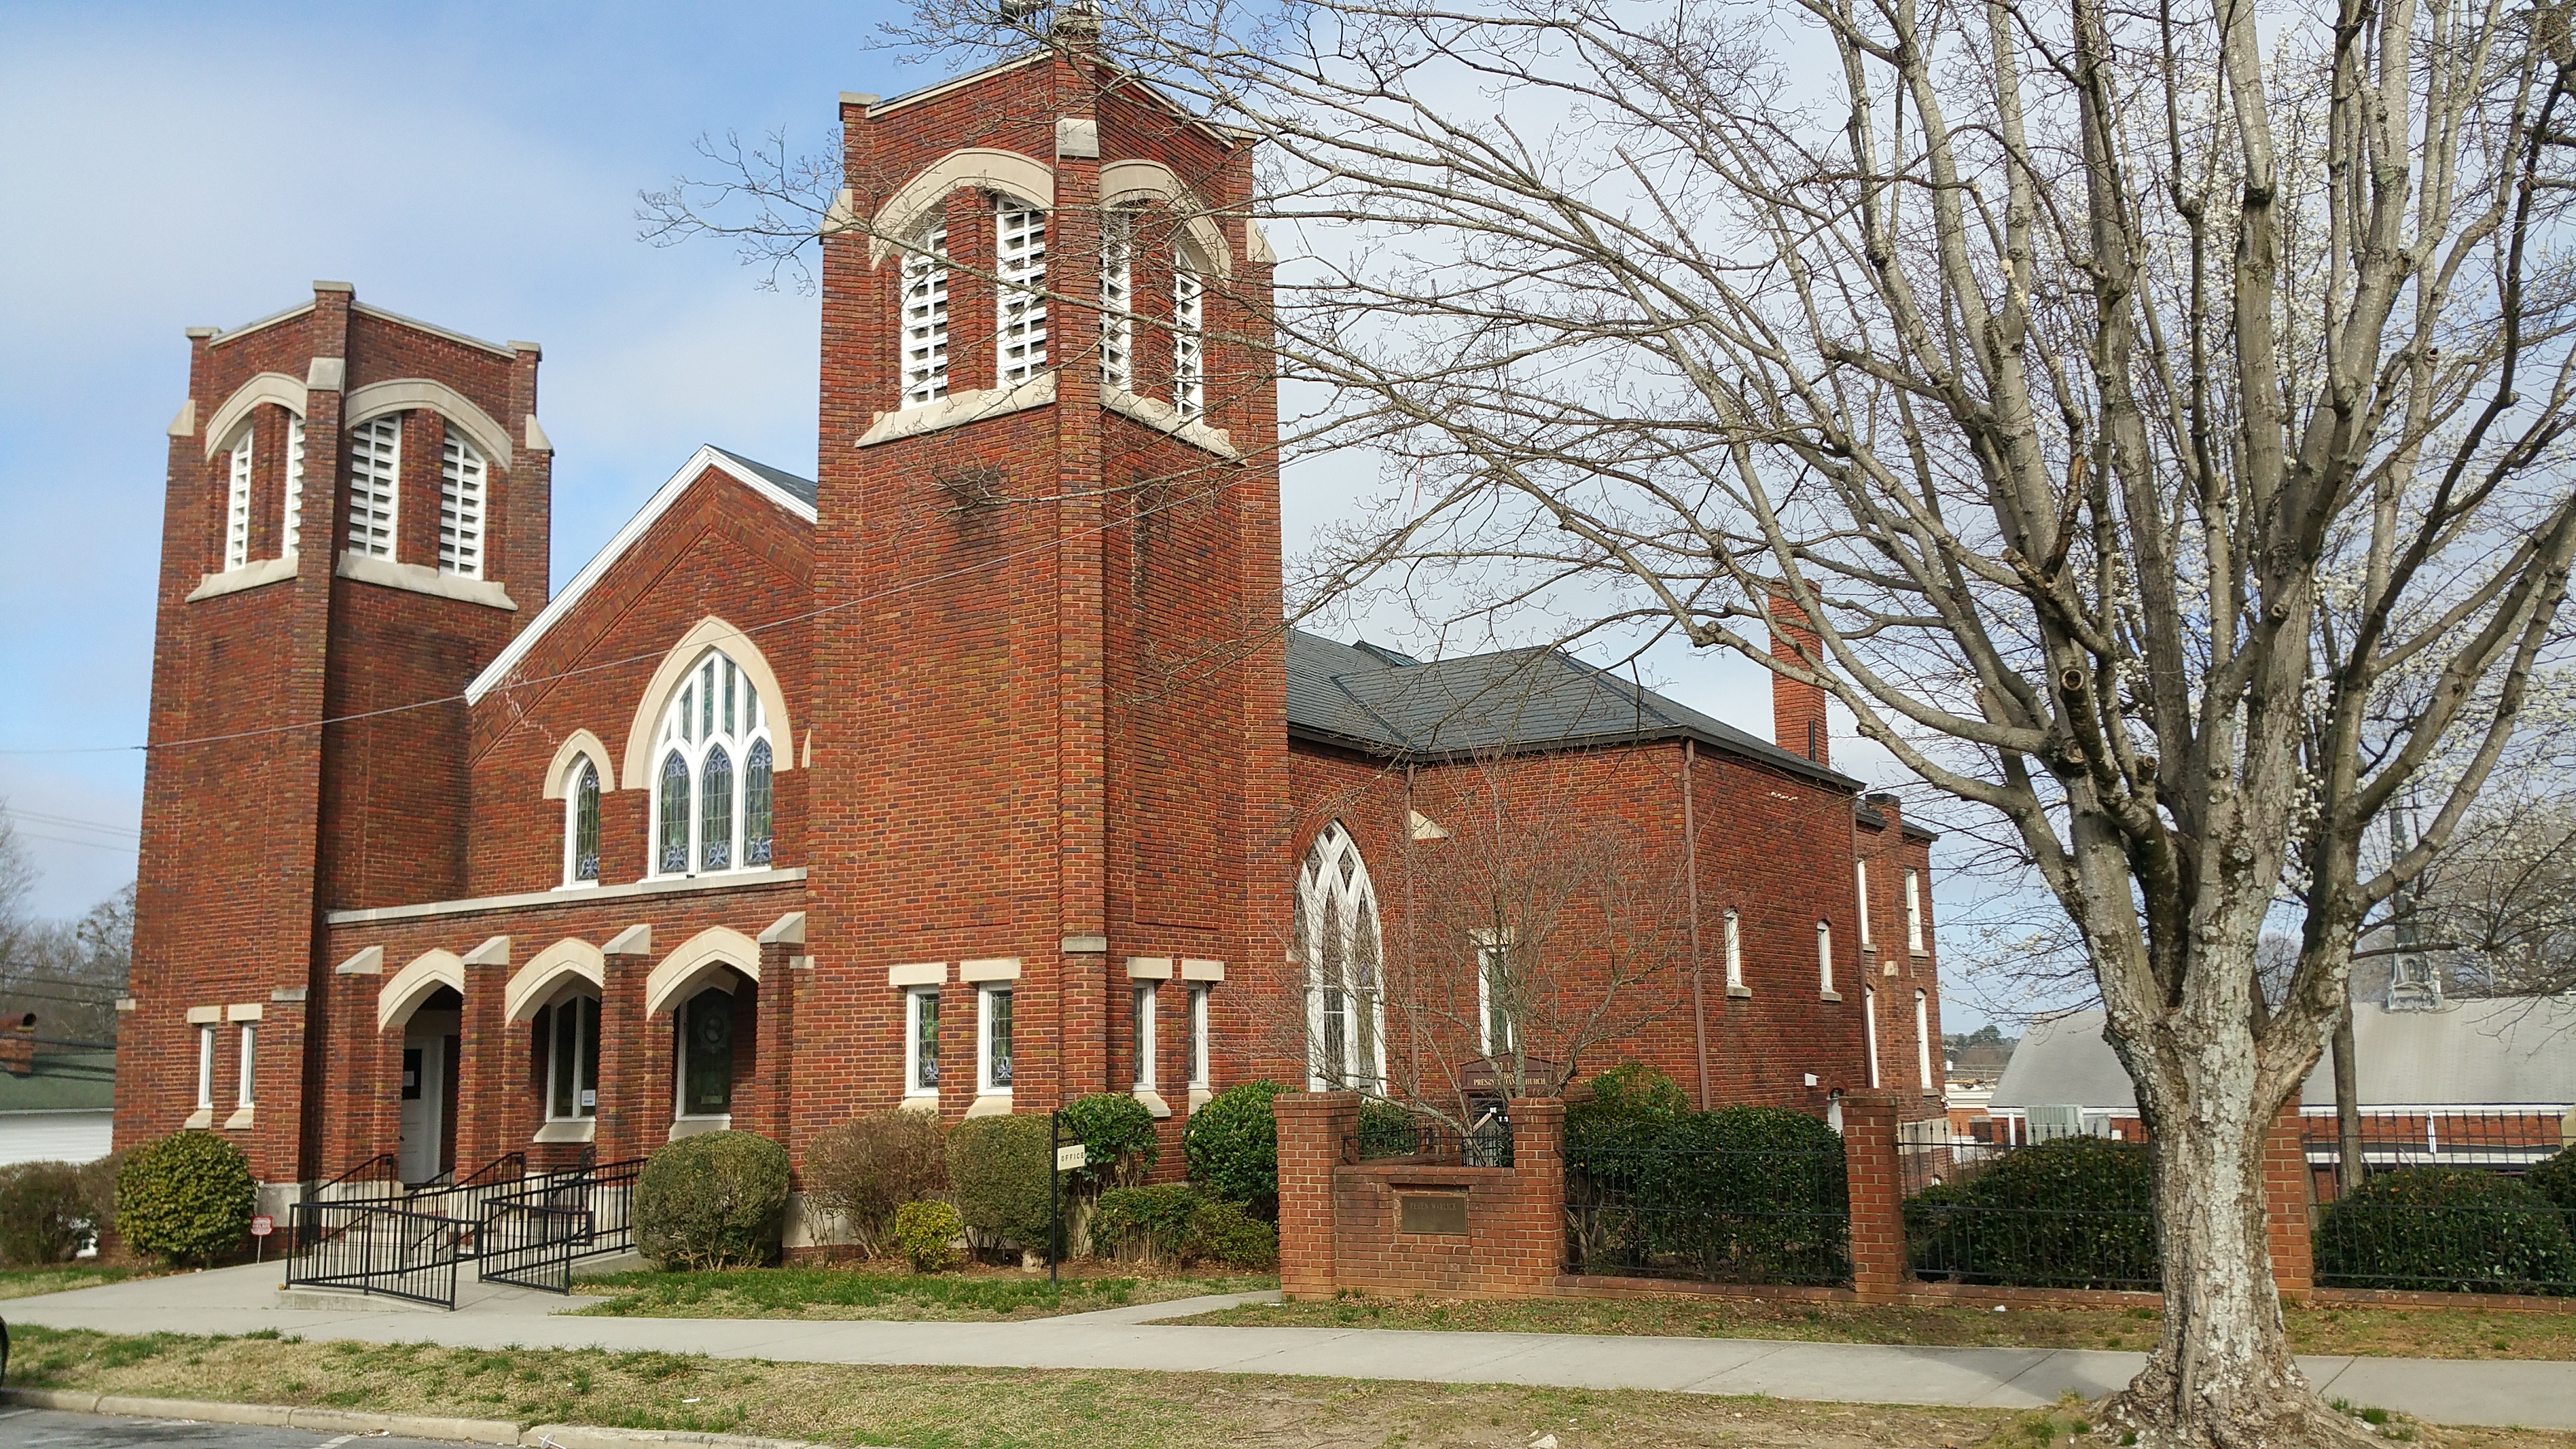 First Presbyterian Church, built in 1917, is listed in the National Register of Historic Places.